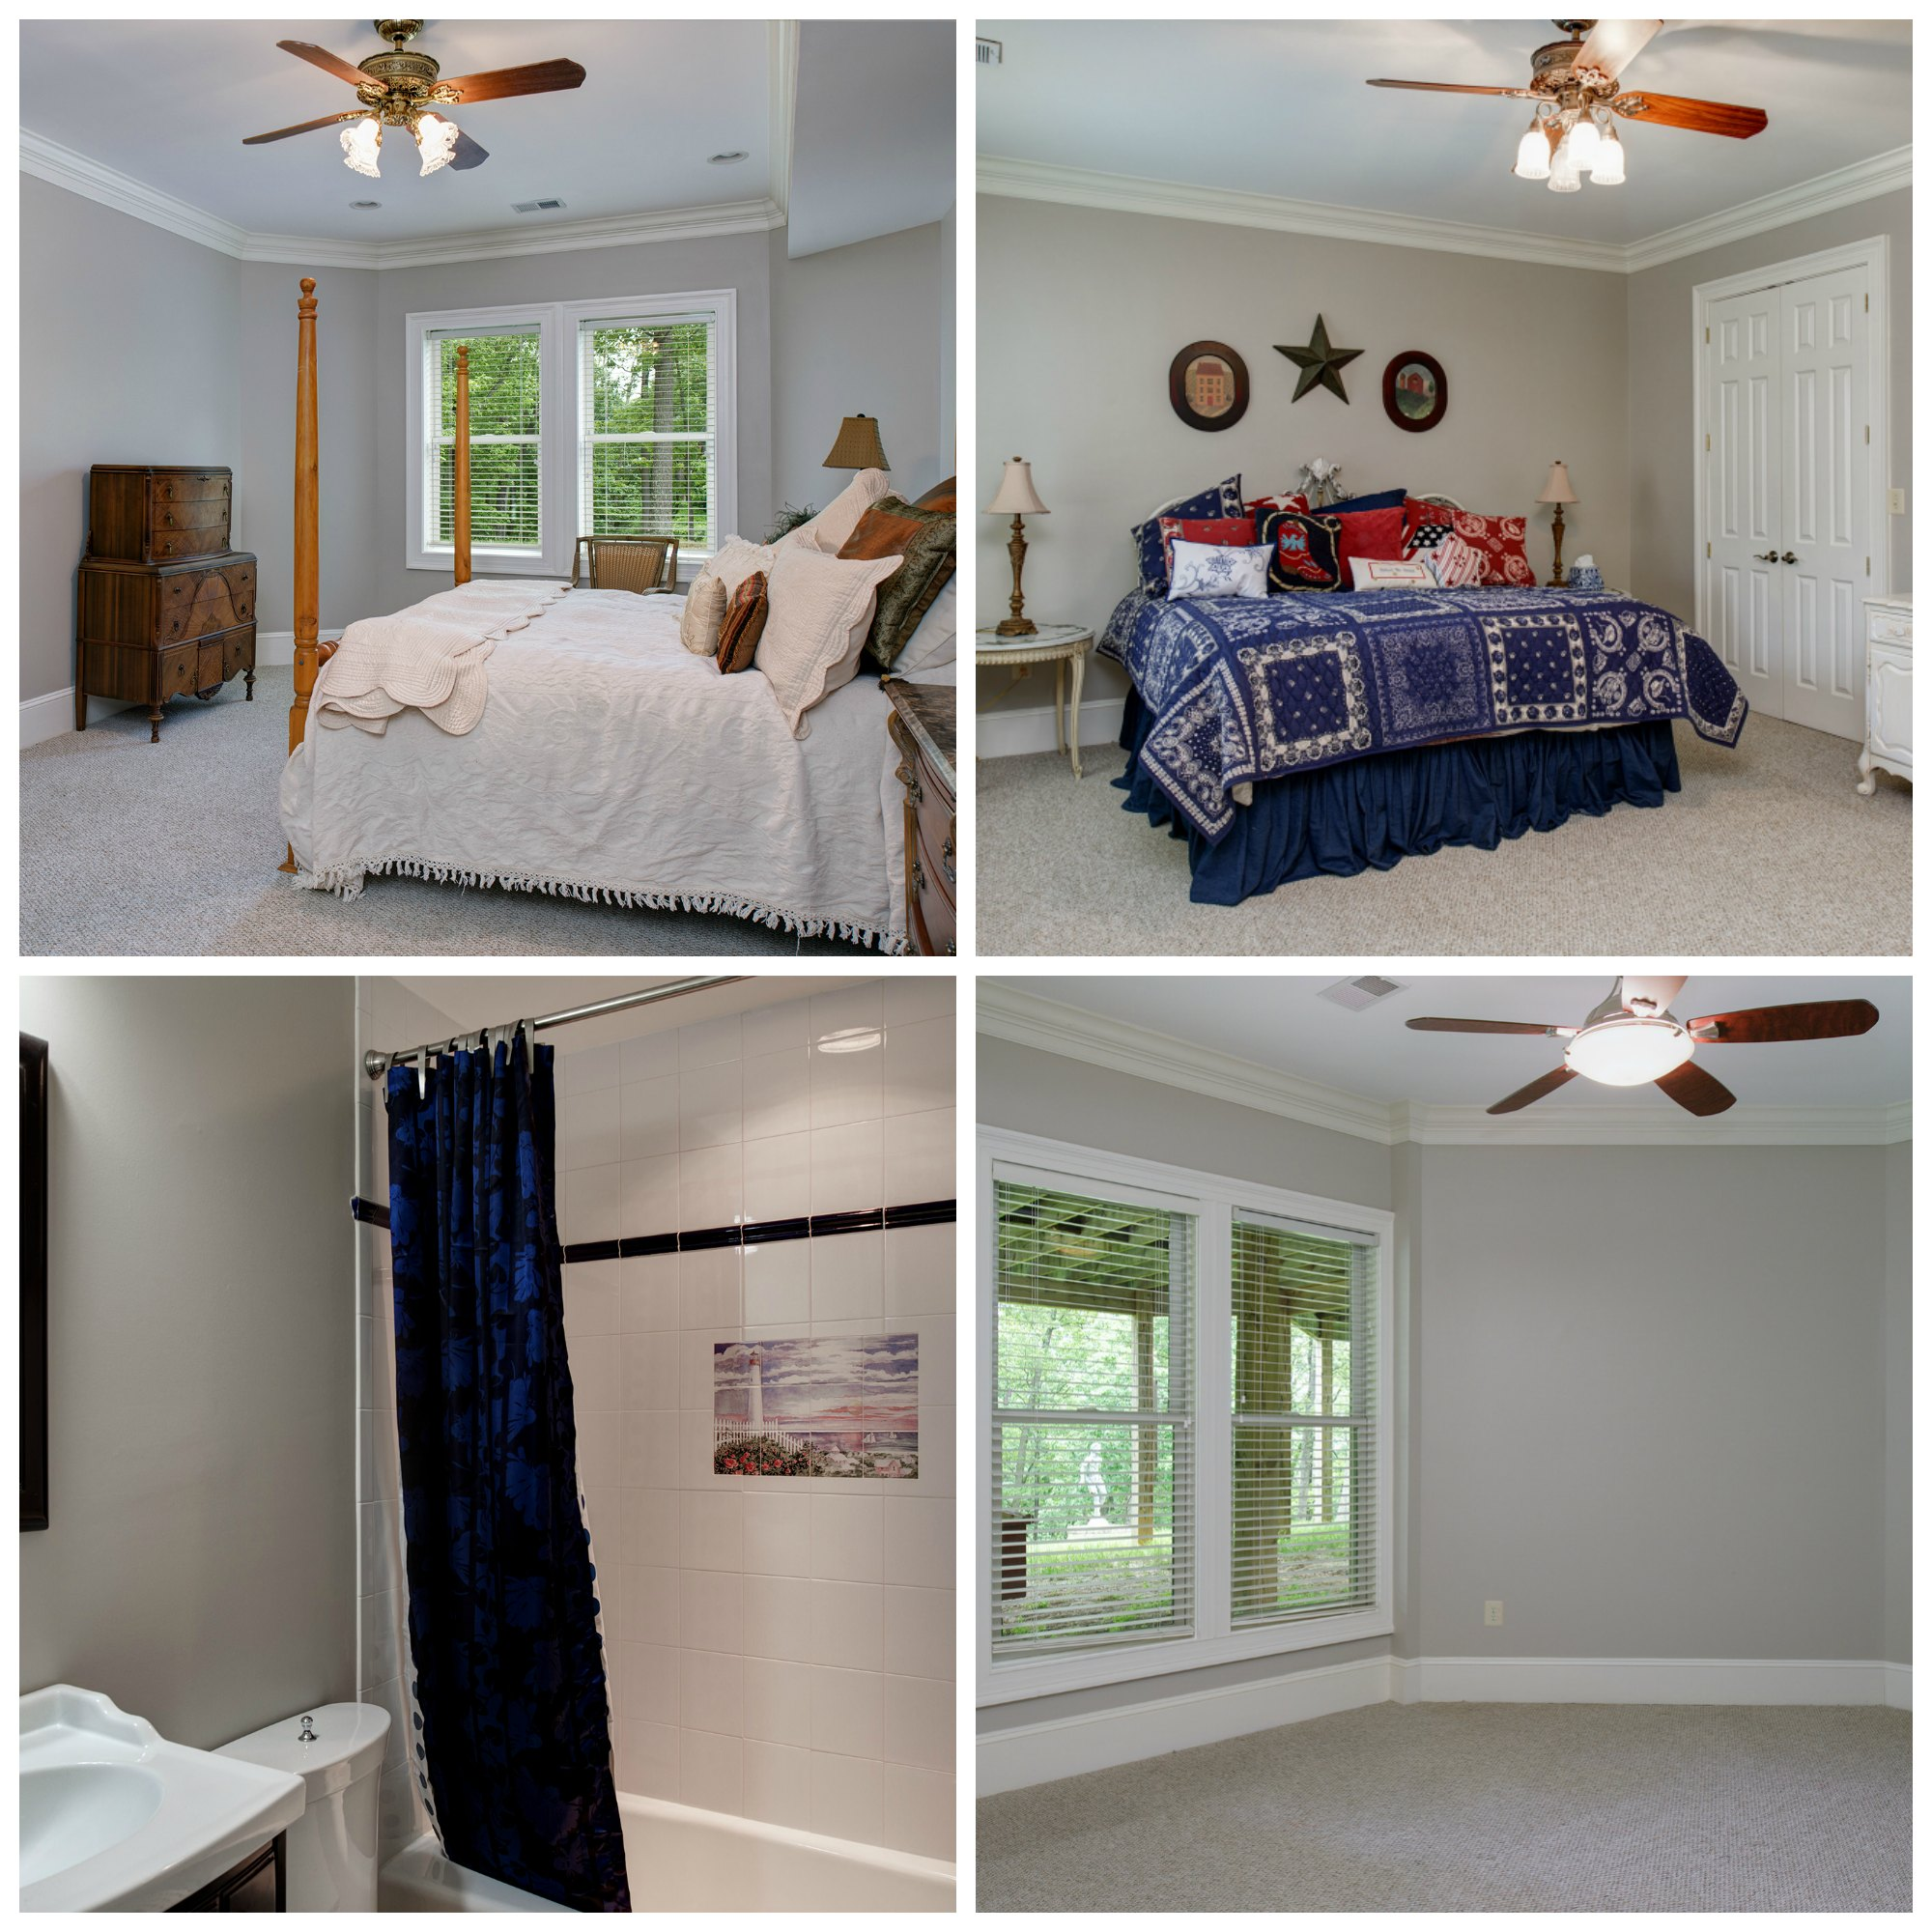 41430 Fox Creek Ln, Raspberry Falls- Lower Level Bedrooms